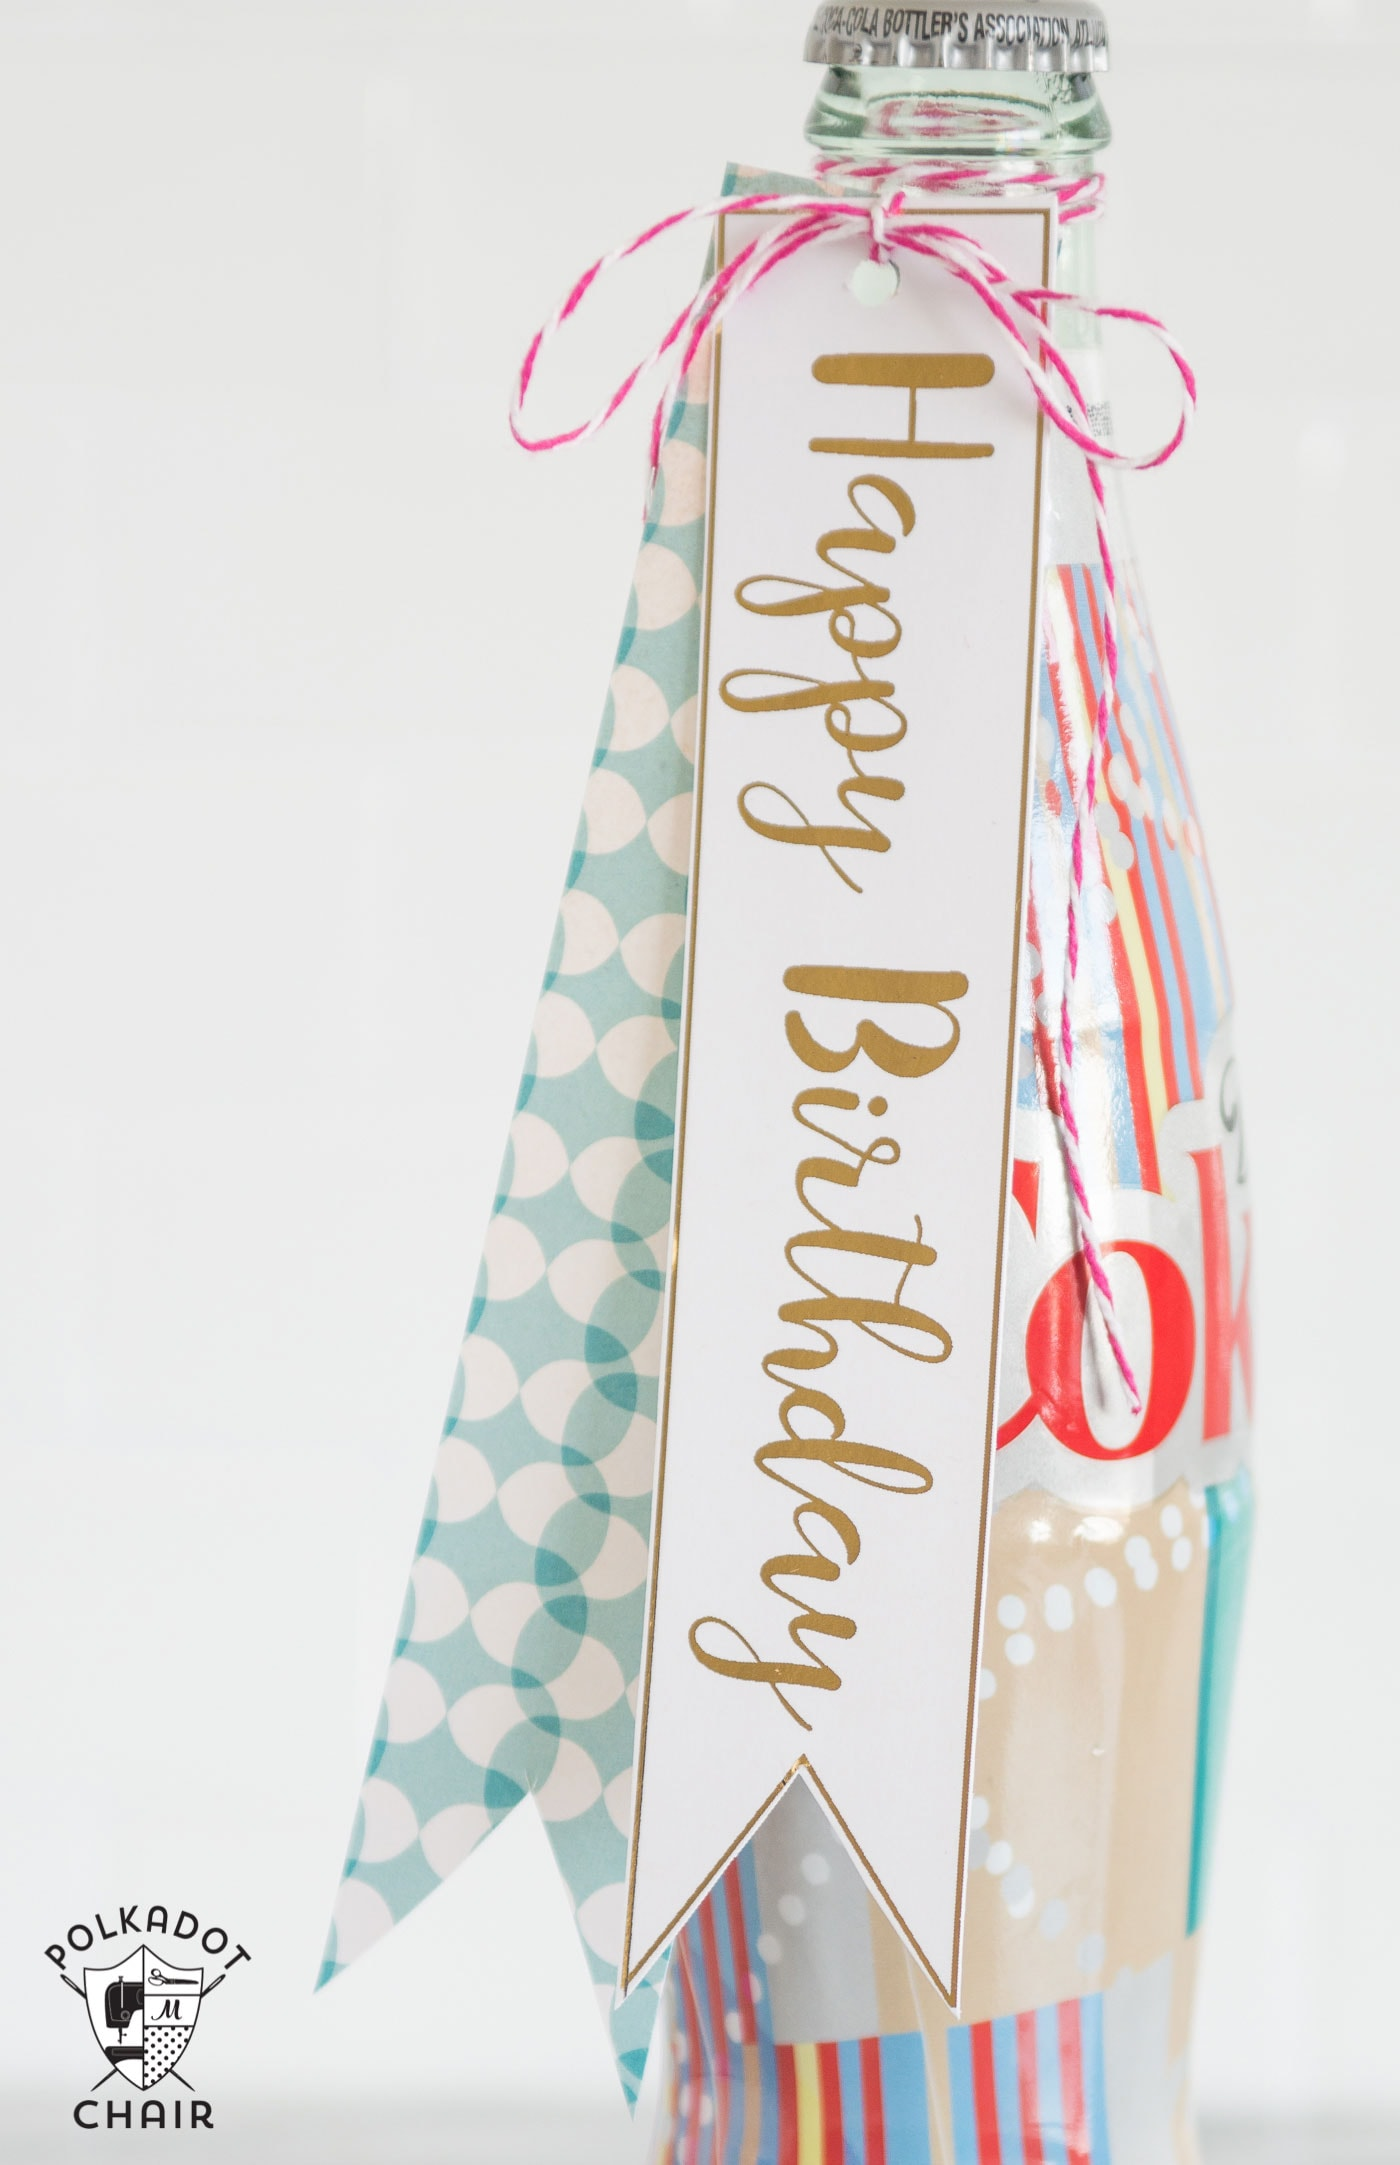 Free Printable Bottle Tags The Polka Dot Chair